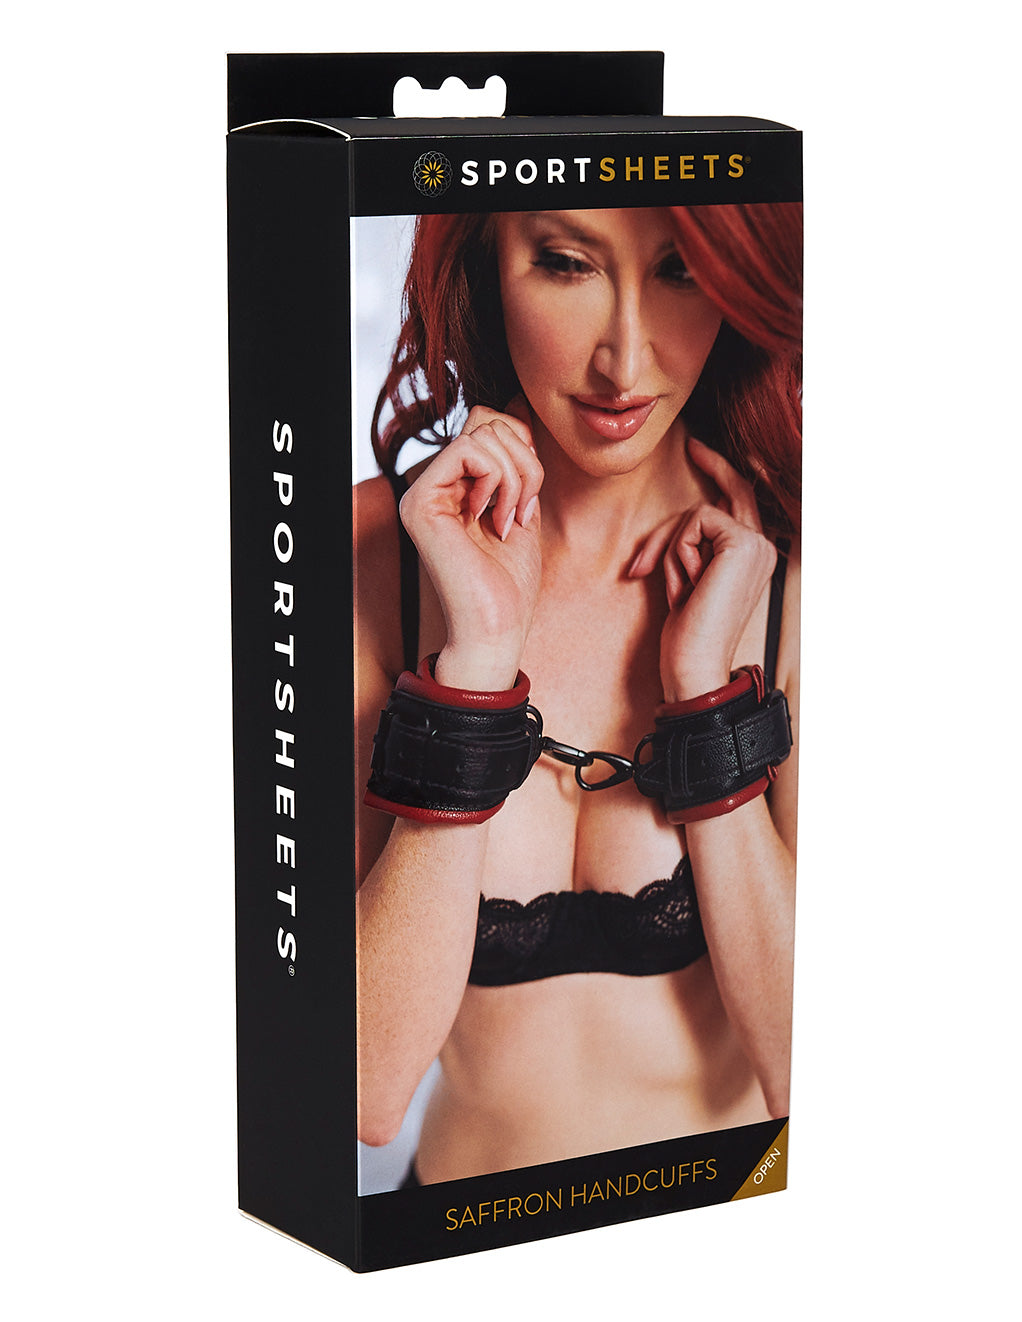 Saffron Cuffs By Sportsheets International Box Front